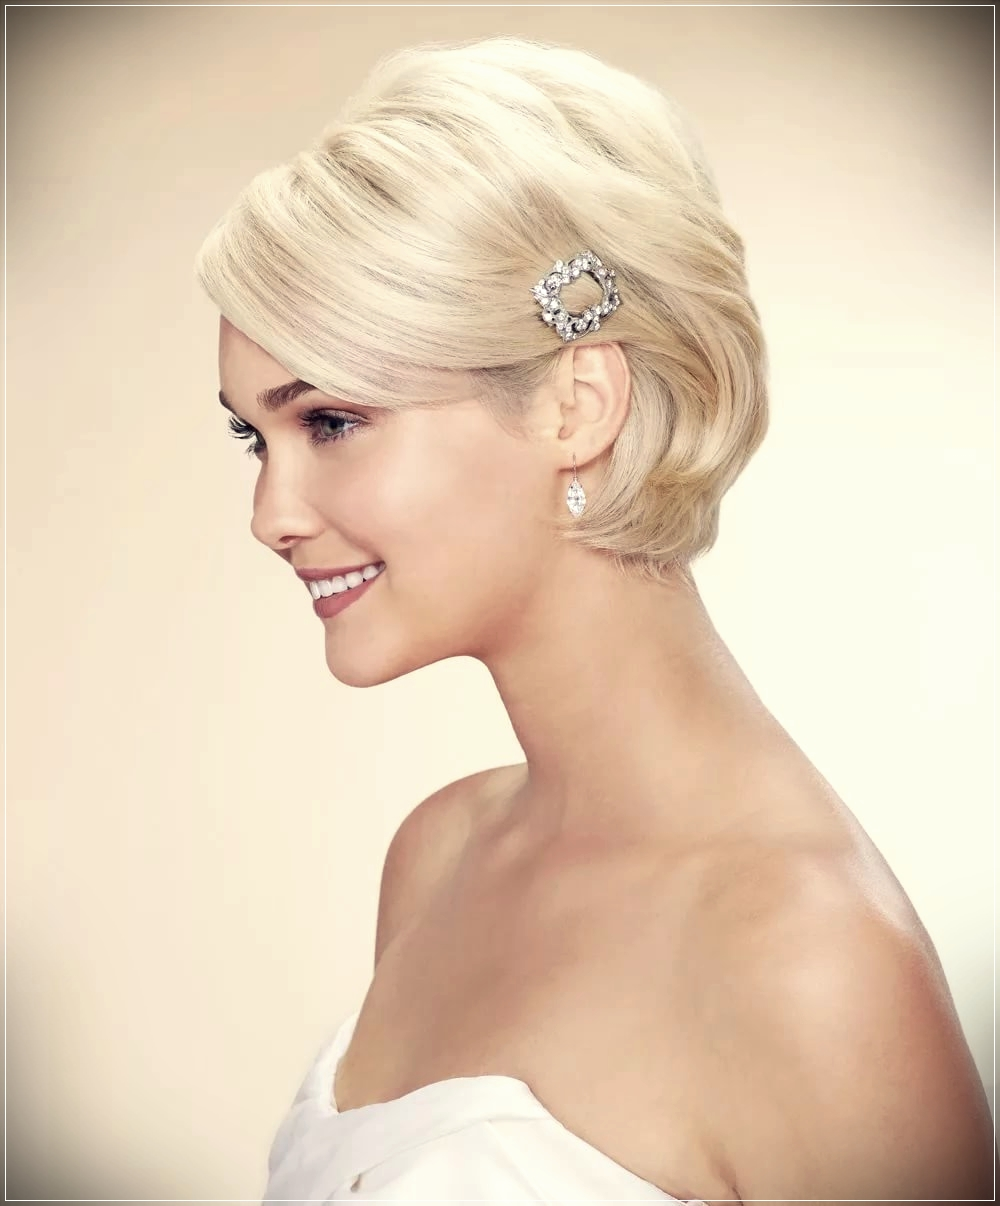 prom hairstyles for short hair 12 - Choose the perfect hairstyle for your short hair